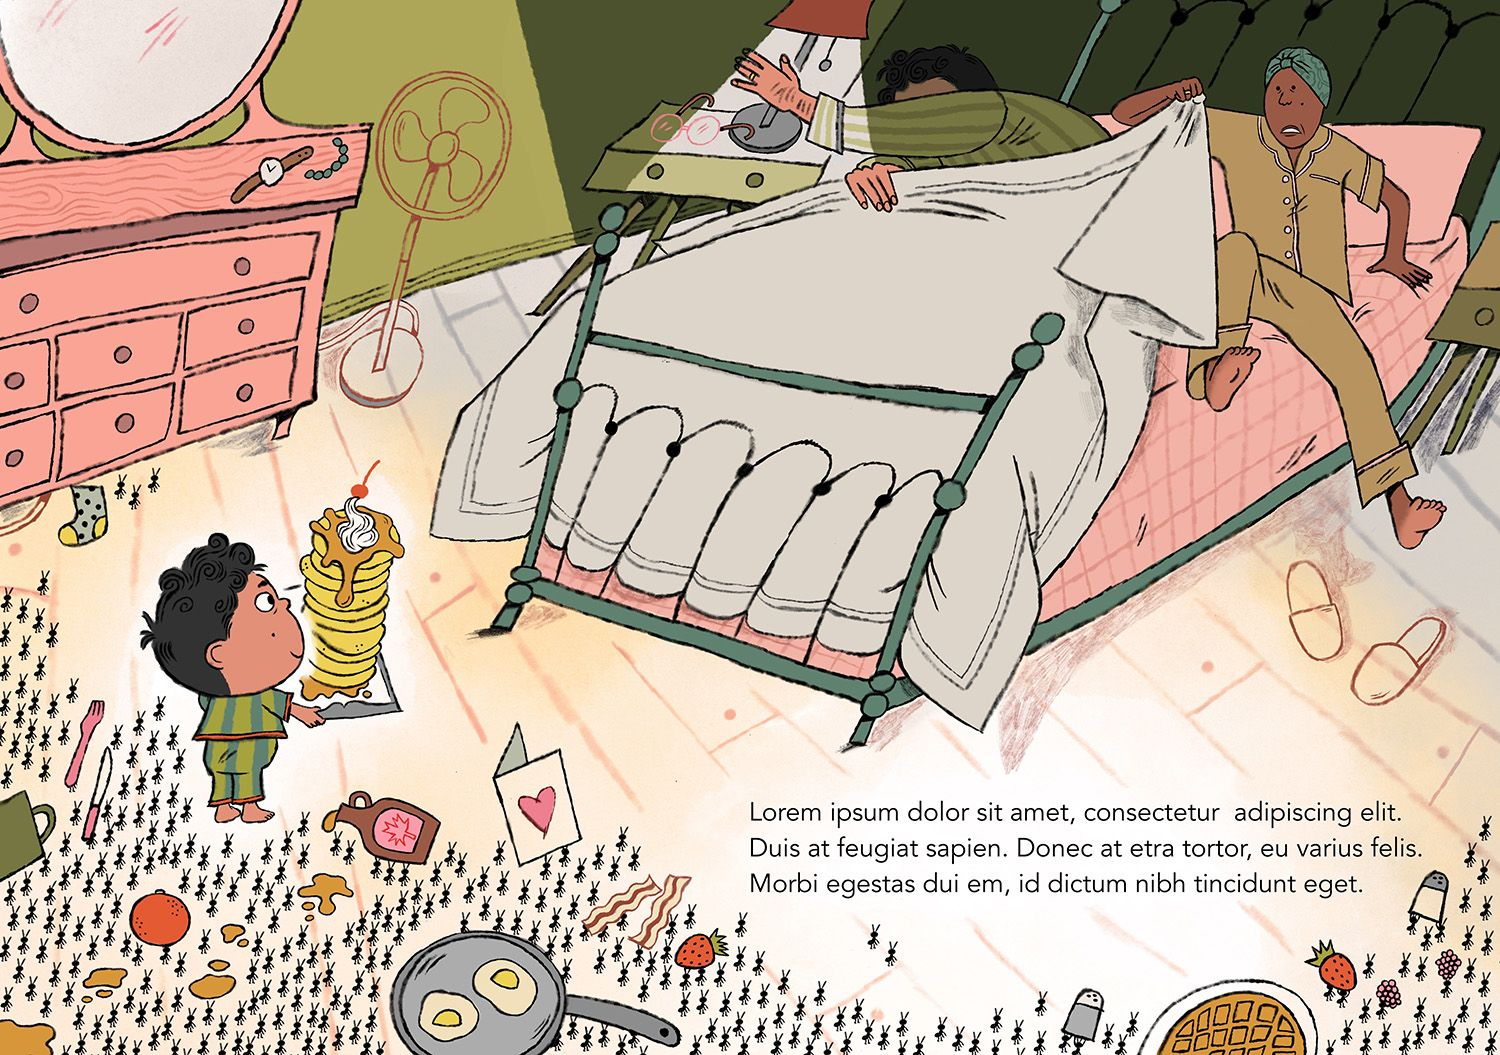 Kordesh_BreakfastInBed_Surprise_Mom_PictureBook_Childrens_Illustration.jpg